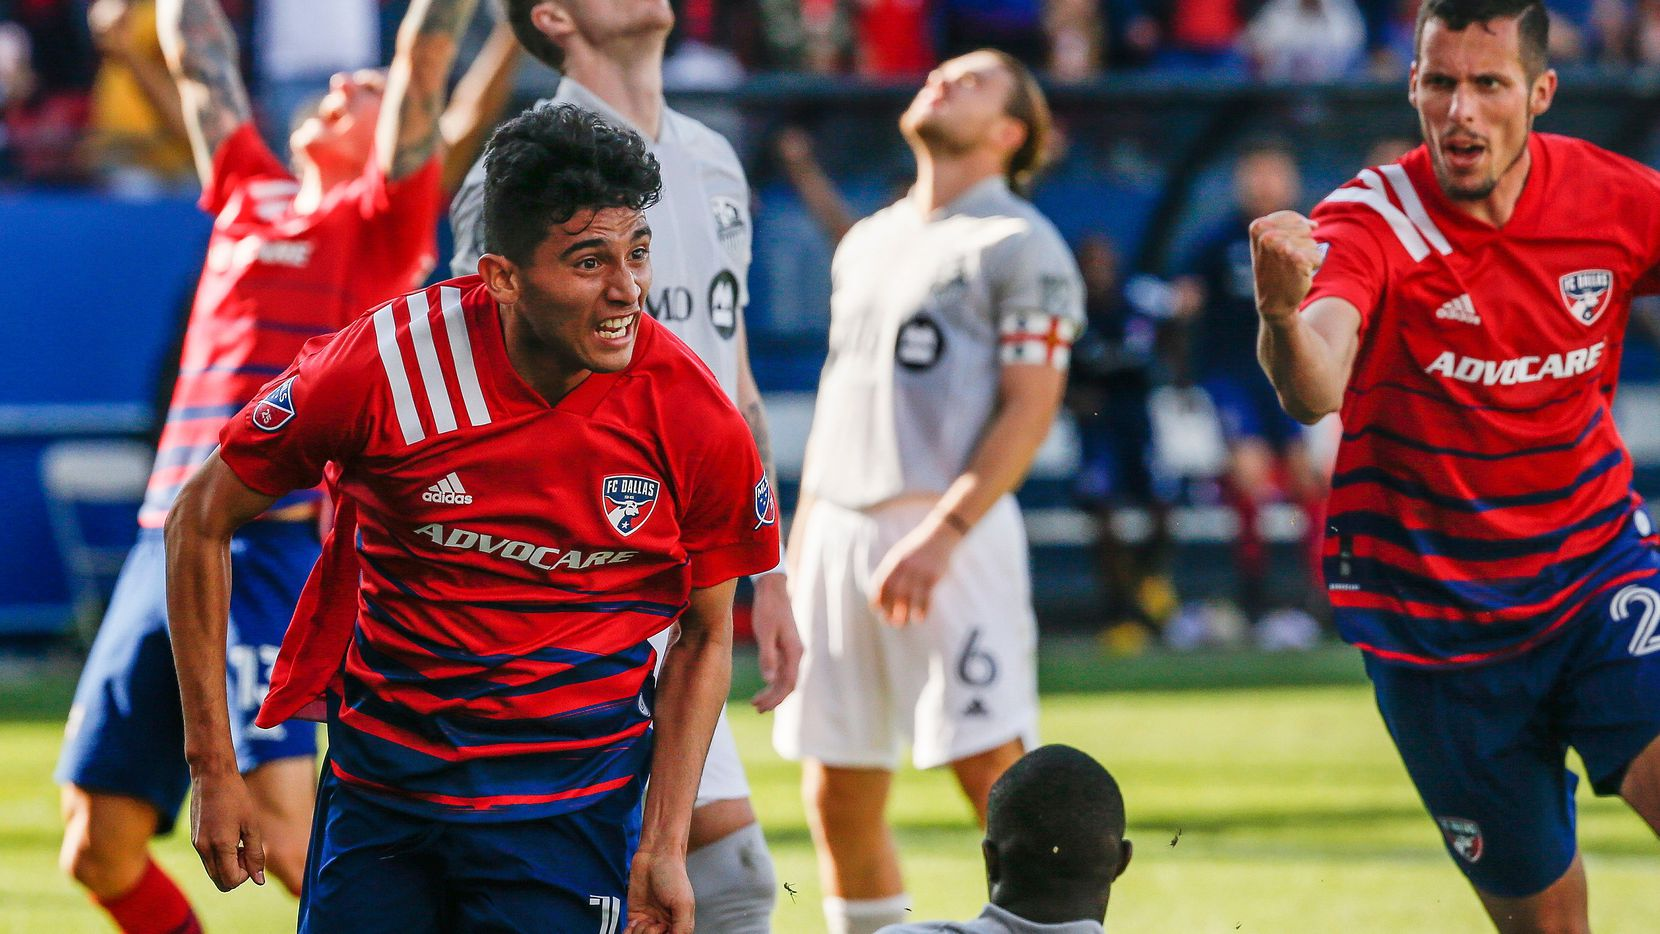 FC Dallas forward Ricardo Pepi, front left, reacts after scoring during the second half of an MLS soccer match against the Montreal Impact, Saturday, March 7, 2020, in Frisco, Texas.